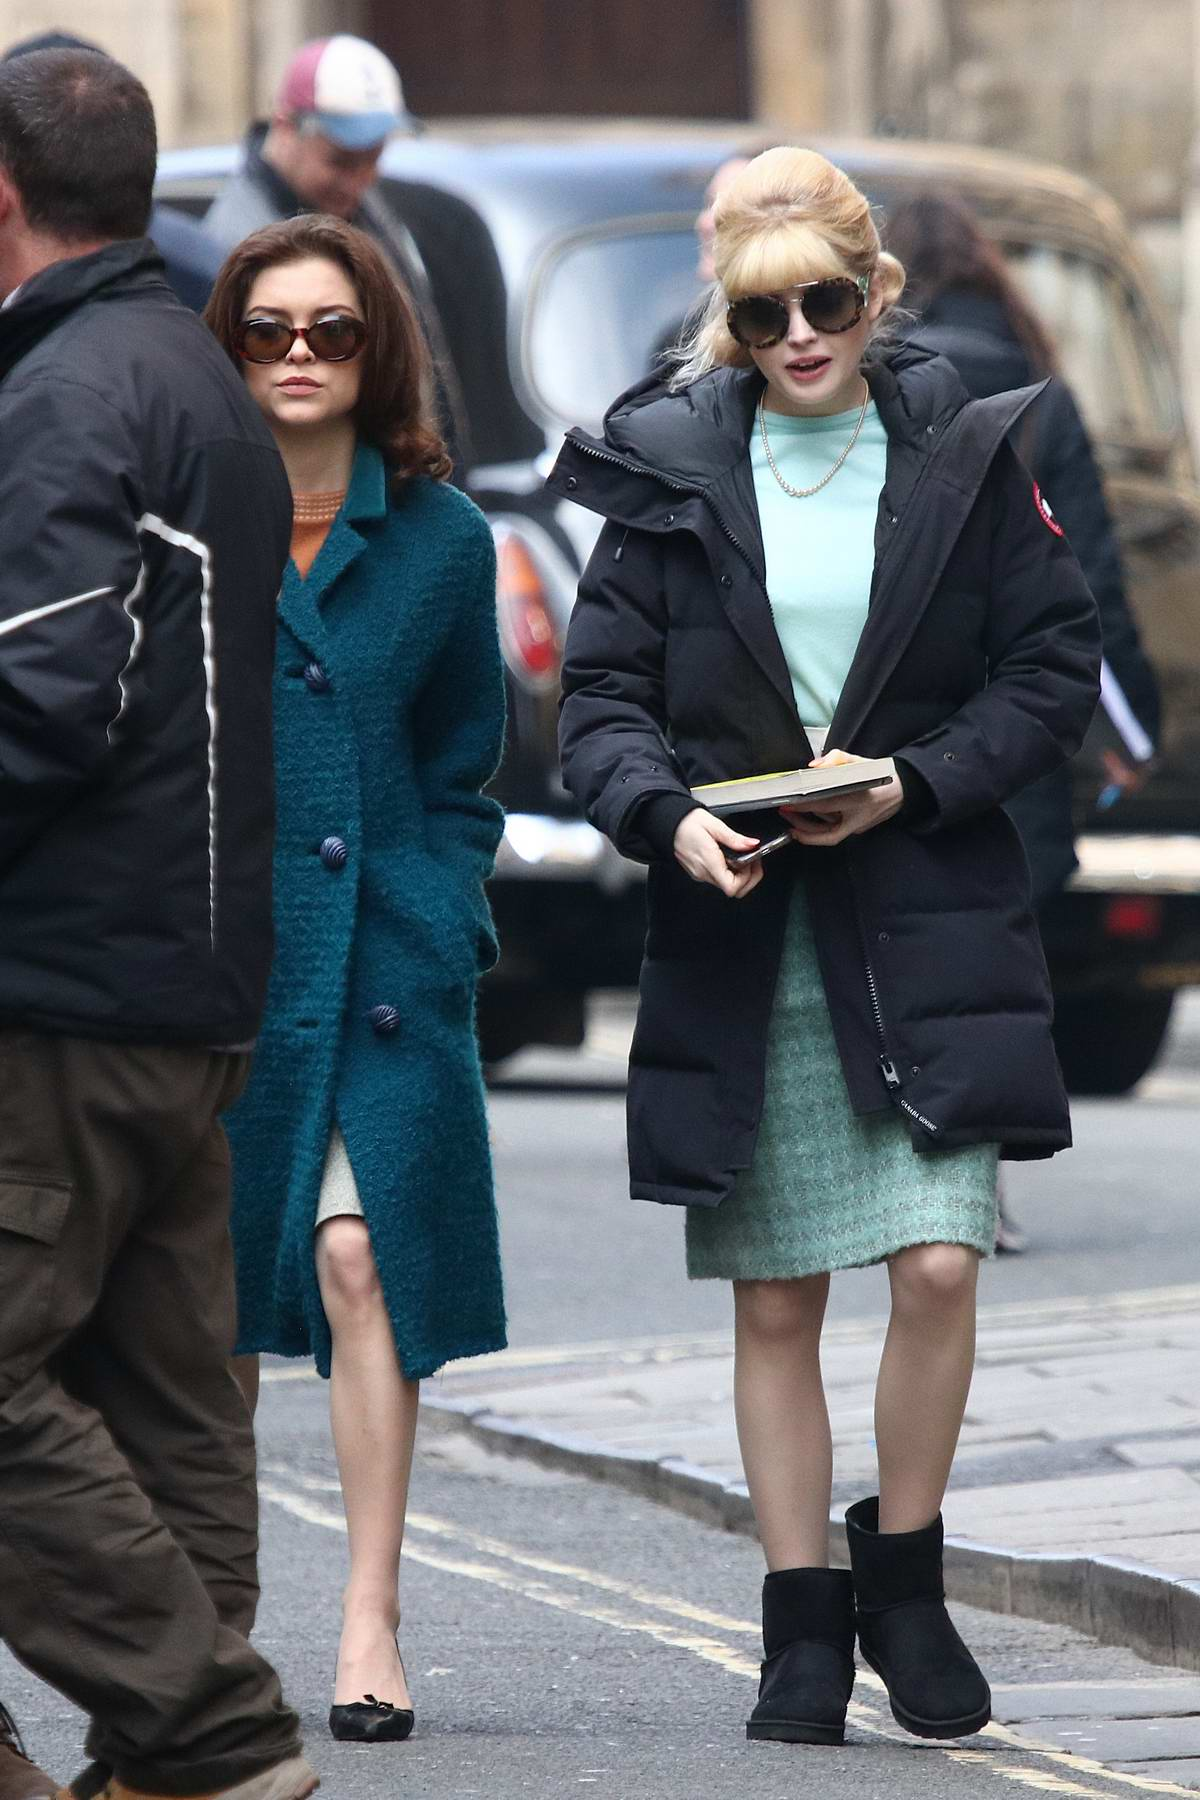 Ellie Bamber spotted filming the new BBC drama 'The Trial Of Christine Keeler' outside Bristol Crown Court in Bristol, UK